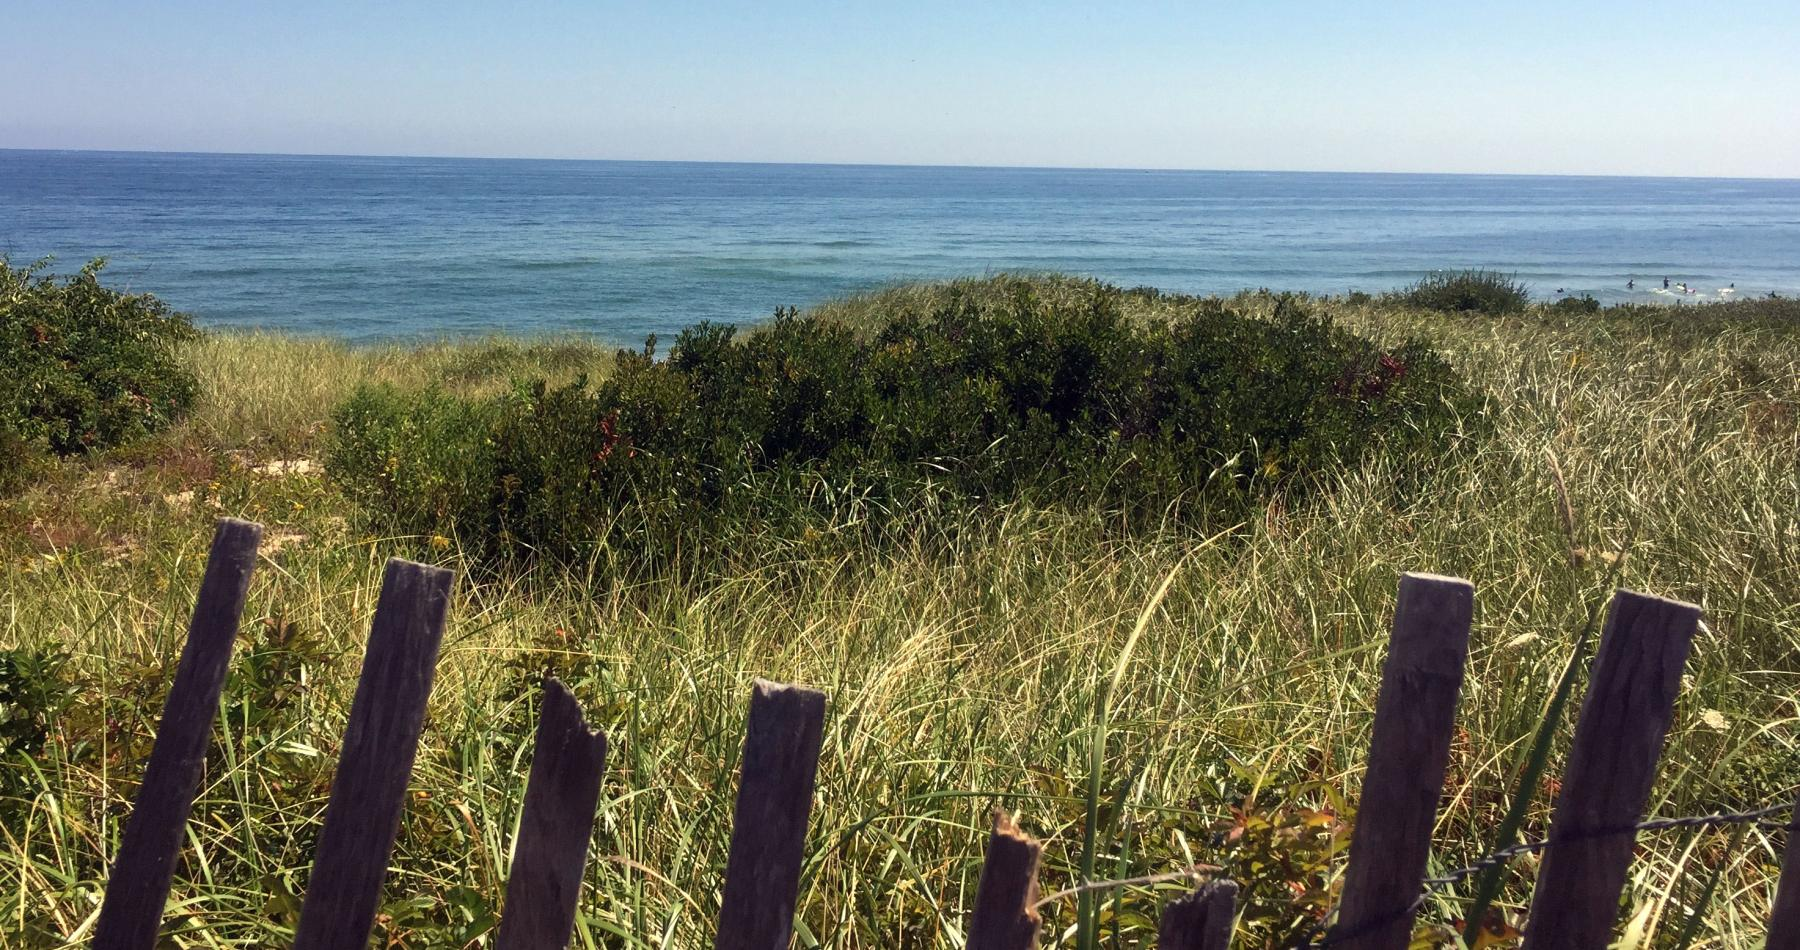 Beach grass on Cape Cod. photo: © Shannon Jarbeau